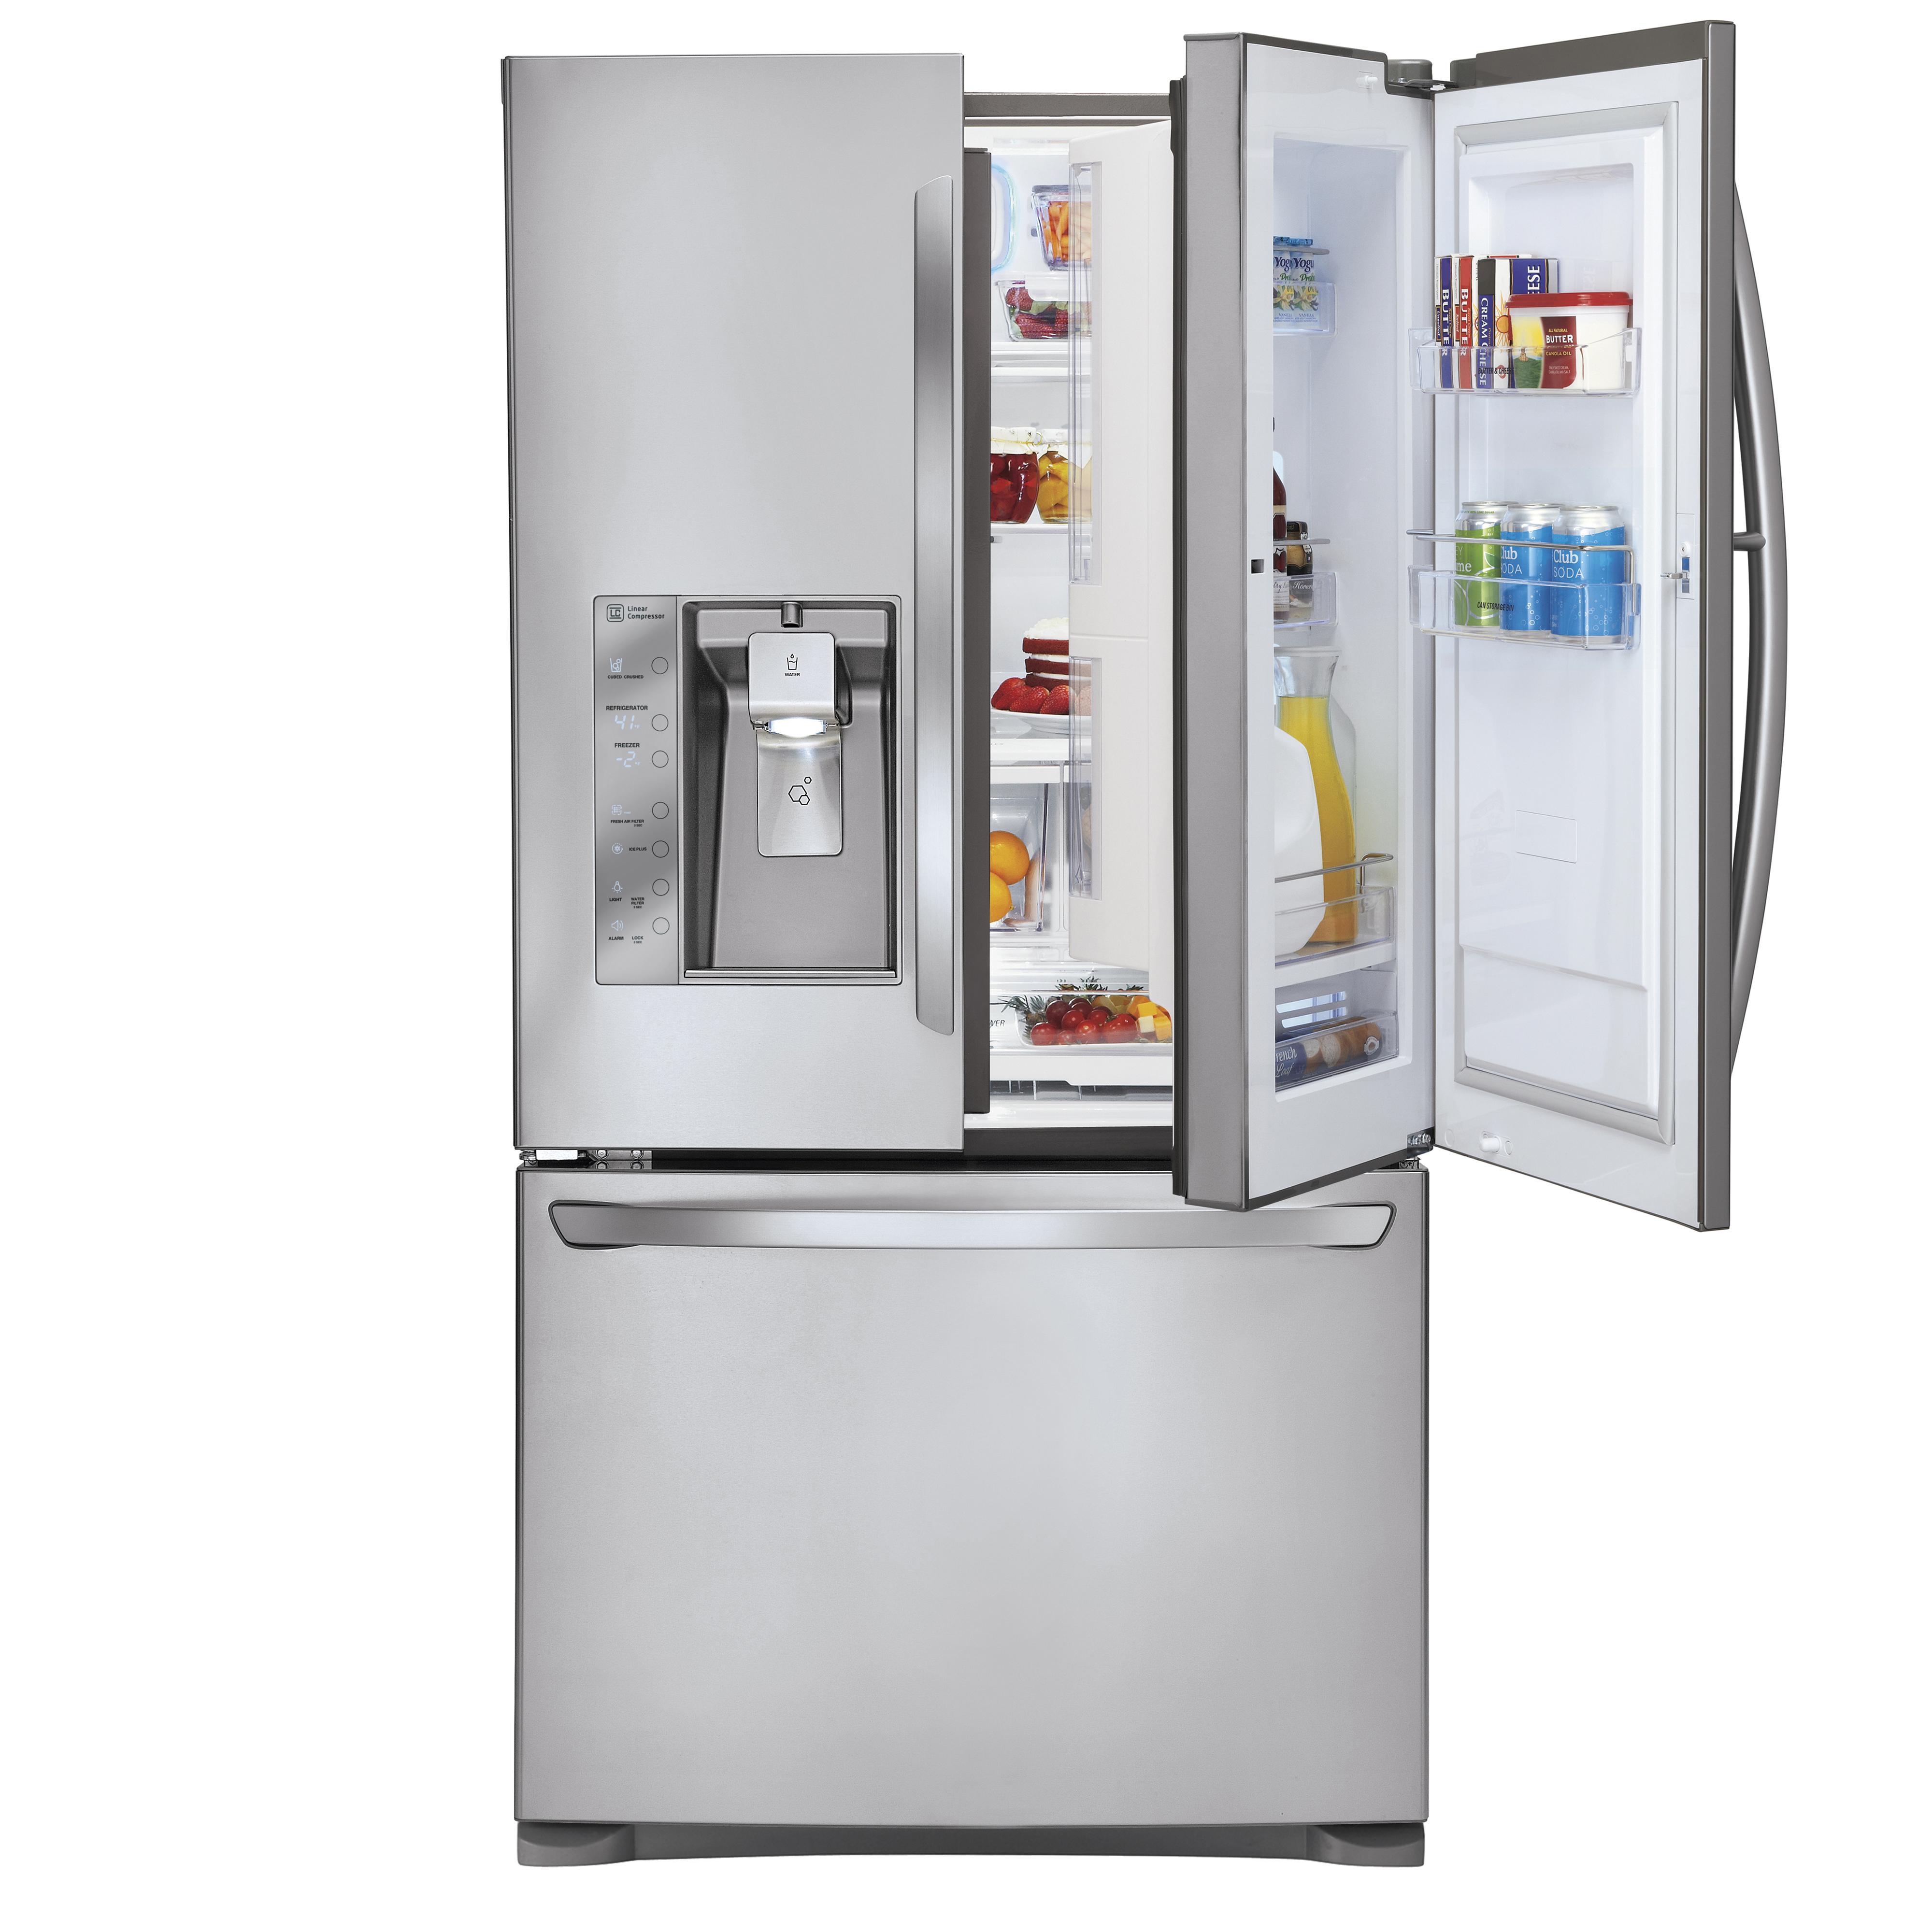 LG Appliances French Door Refrigerators 29 Cu. Ft. 3 Door French Door Fridge - Item Number: LFXS29766S